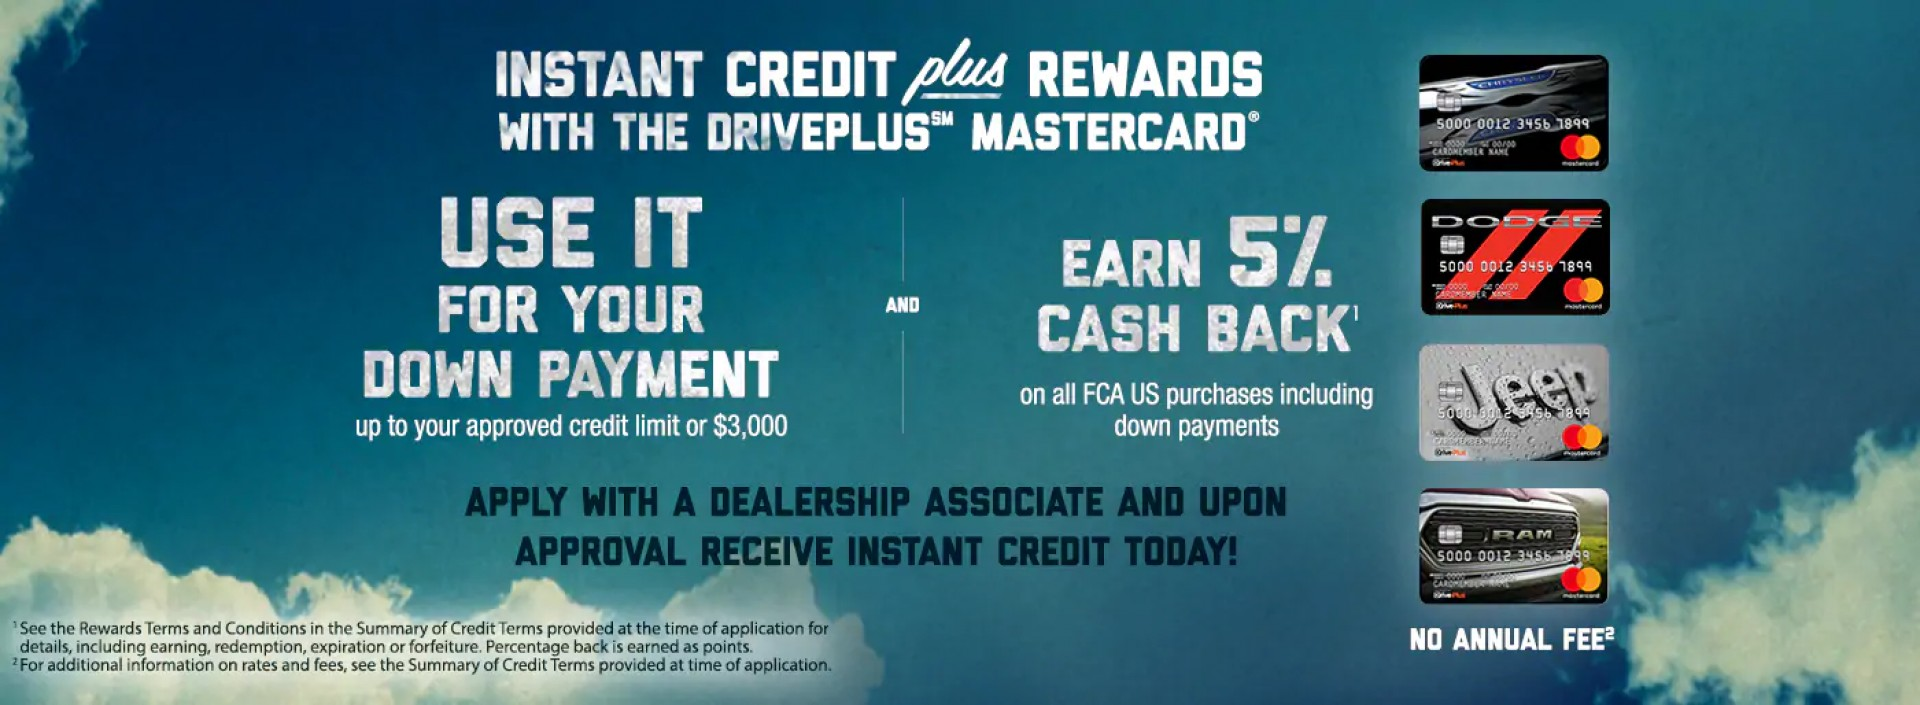 Instant Credit PLUS rewards with the Driveplus mastercard. Use it for your down payment - earn 5% cash back.